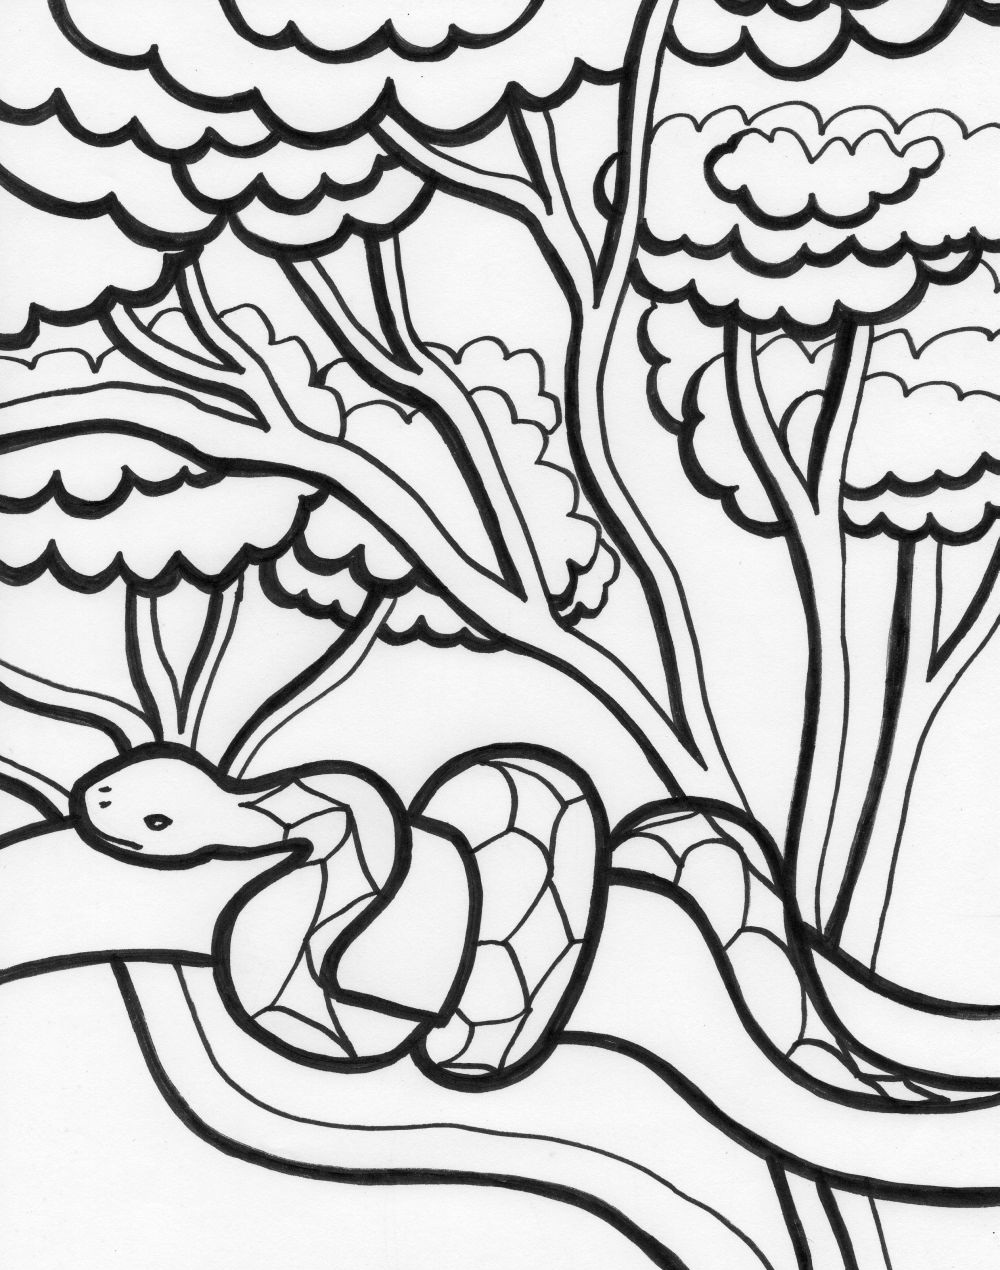 snake coloring pages 14 coloring kids